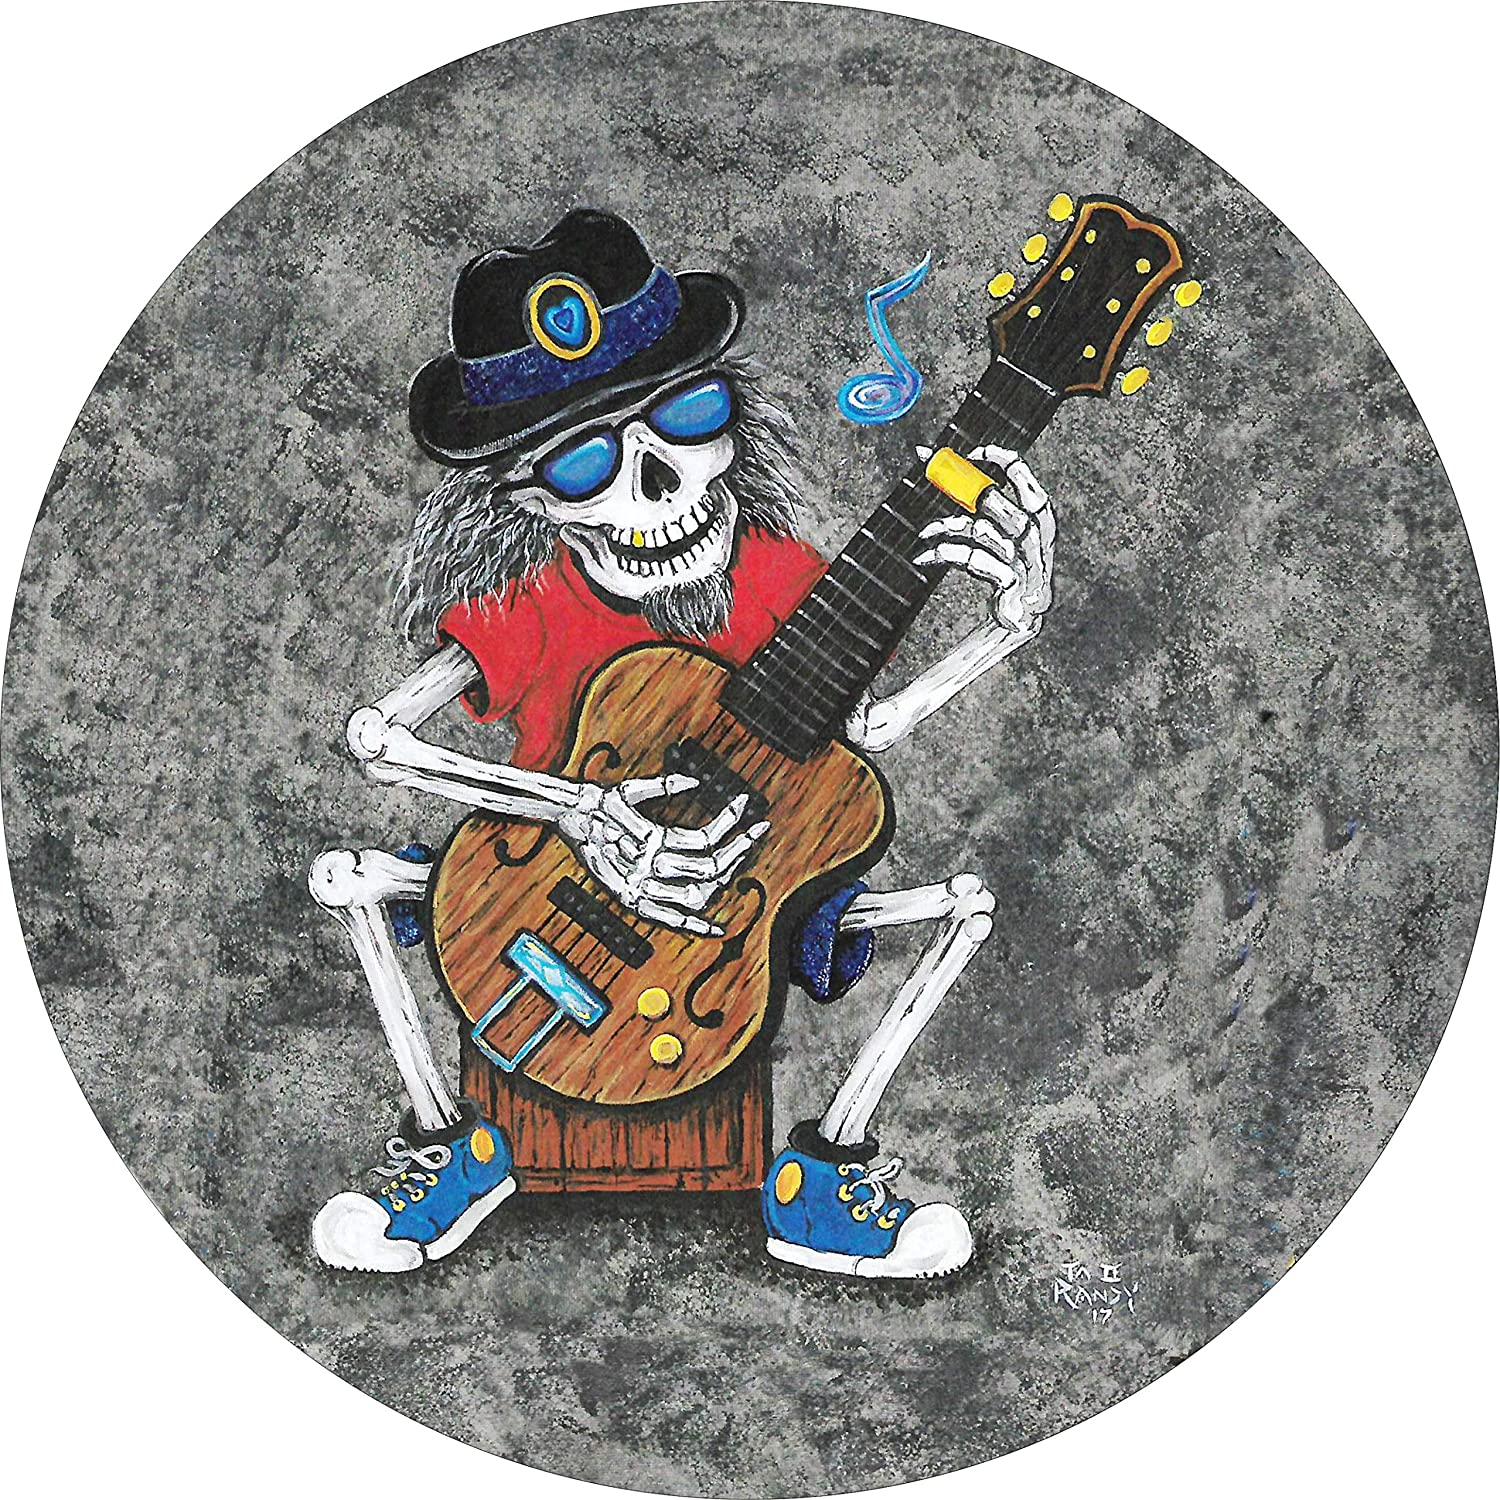 TIRE COVER CENTRAL Skelton Colorado Springs Mall Guitar Music Tire Sales of SALE items from new works Spare Wheel Cover